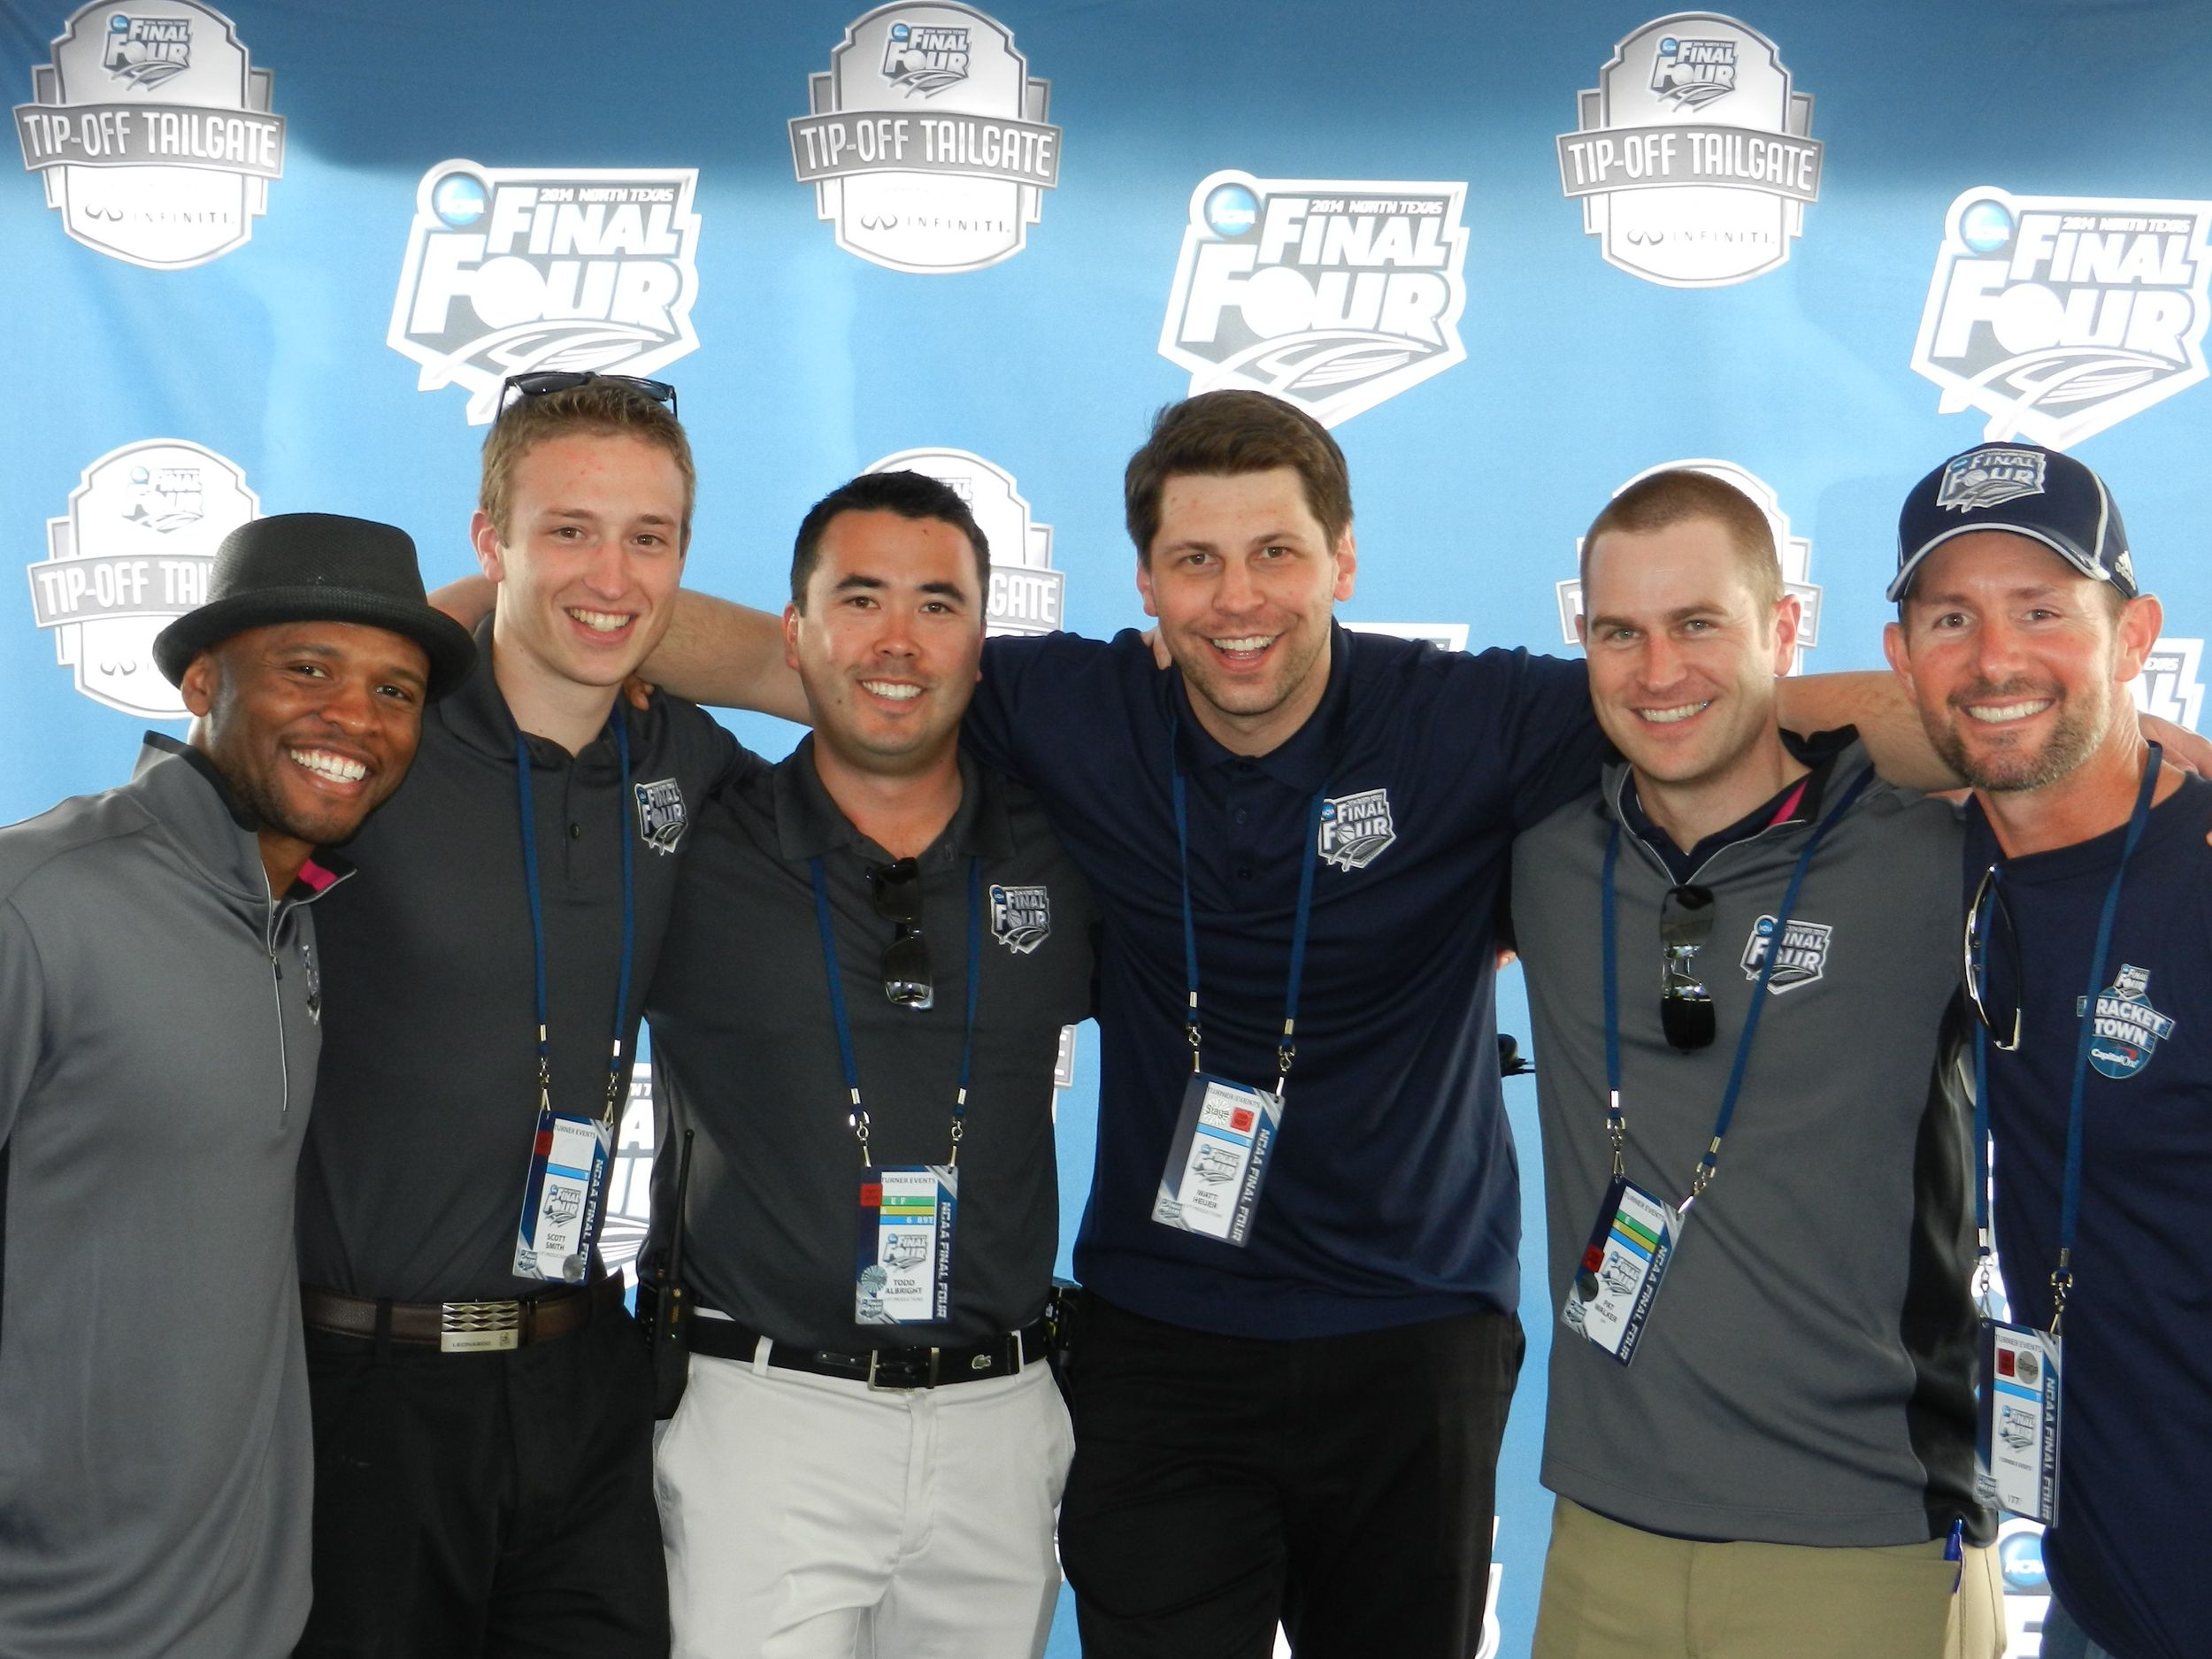 Ro (far left) with 3PT staff following the 2014 Tip-Off Tailgate at the Final Four in North Texas.